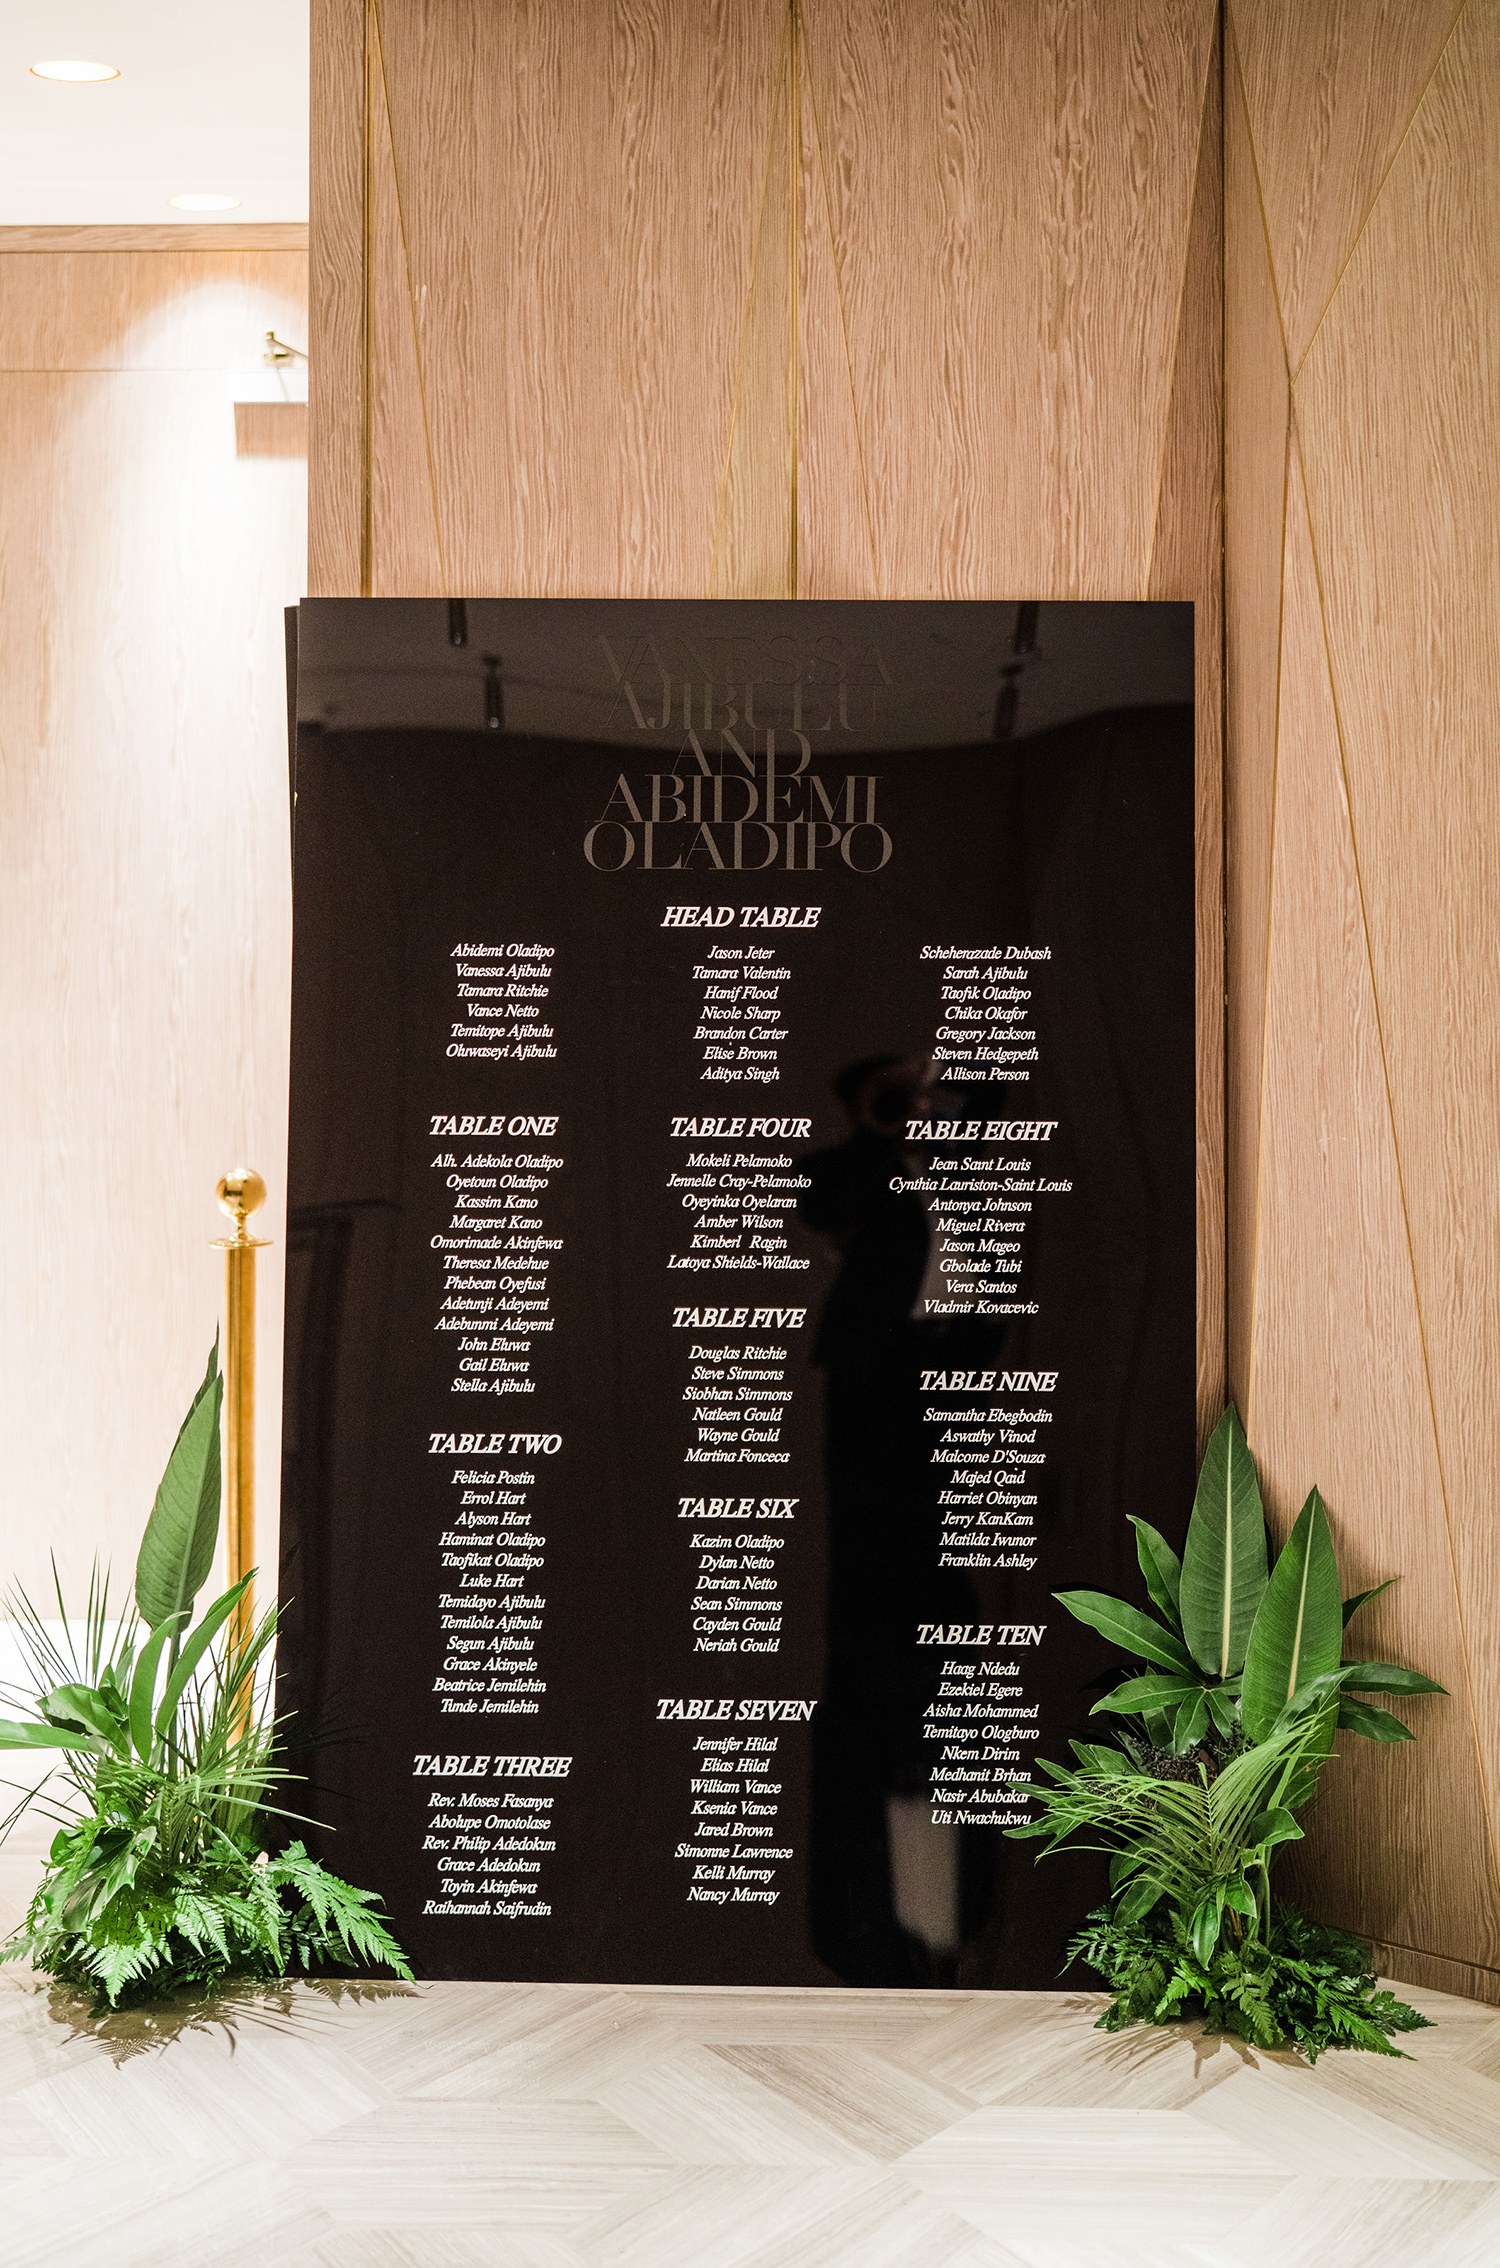 vanessa abidemi wedding seating chart and plants